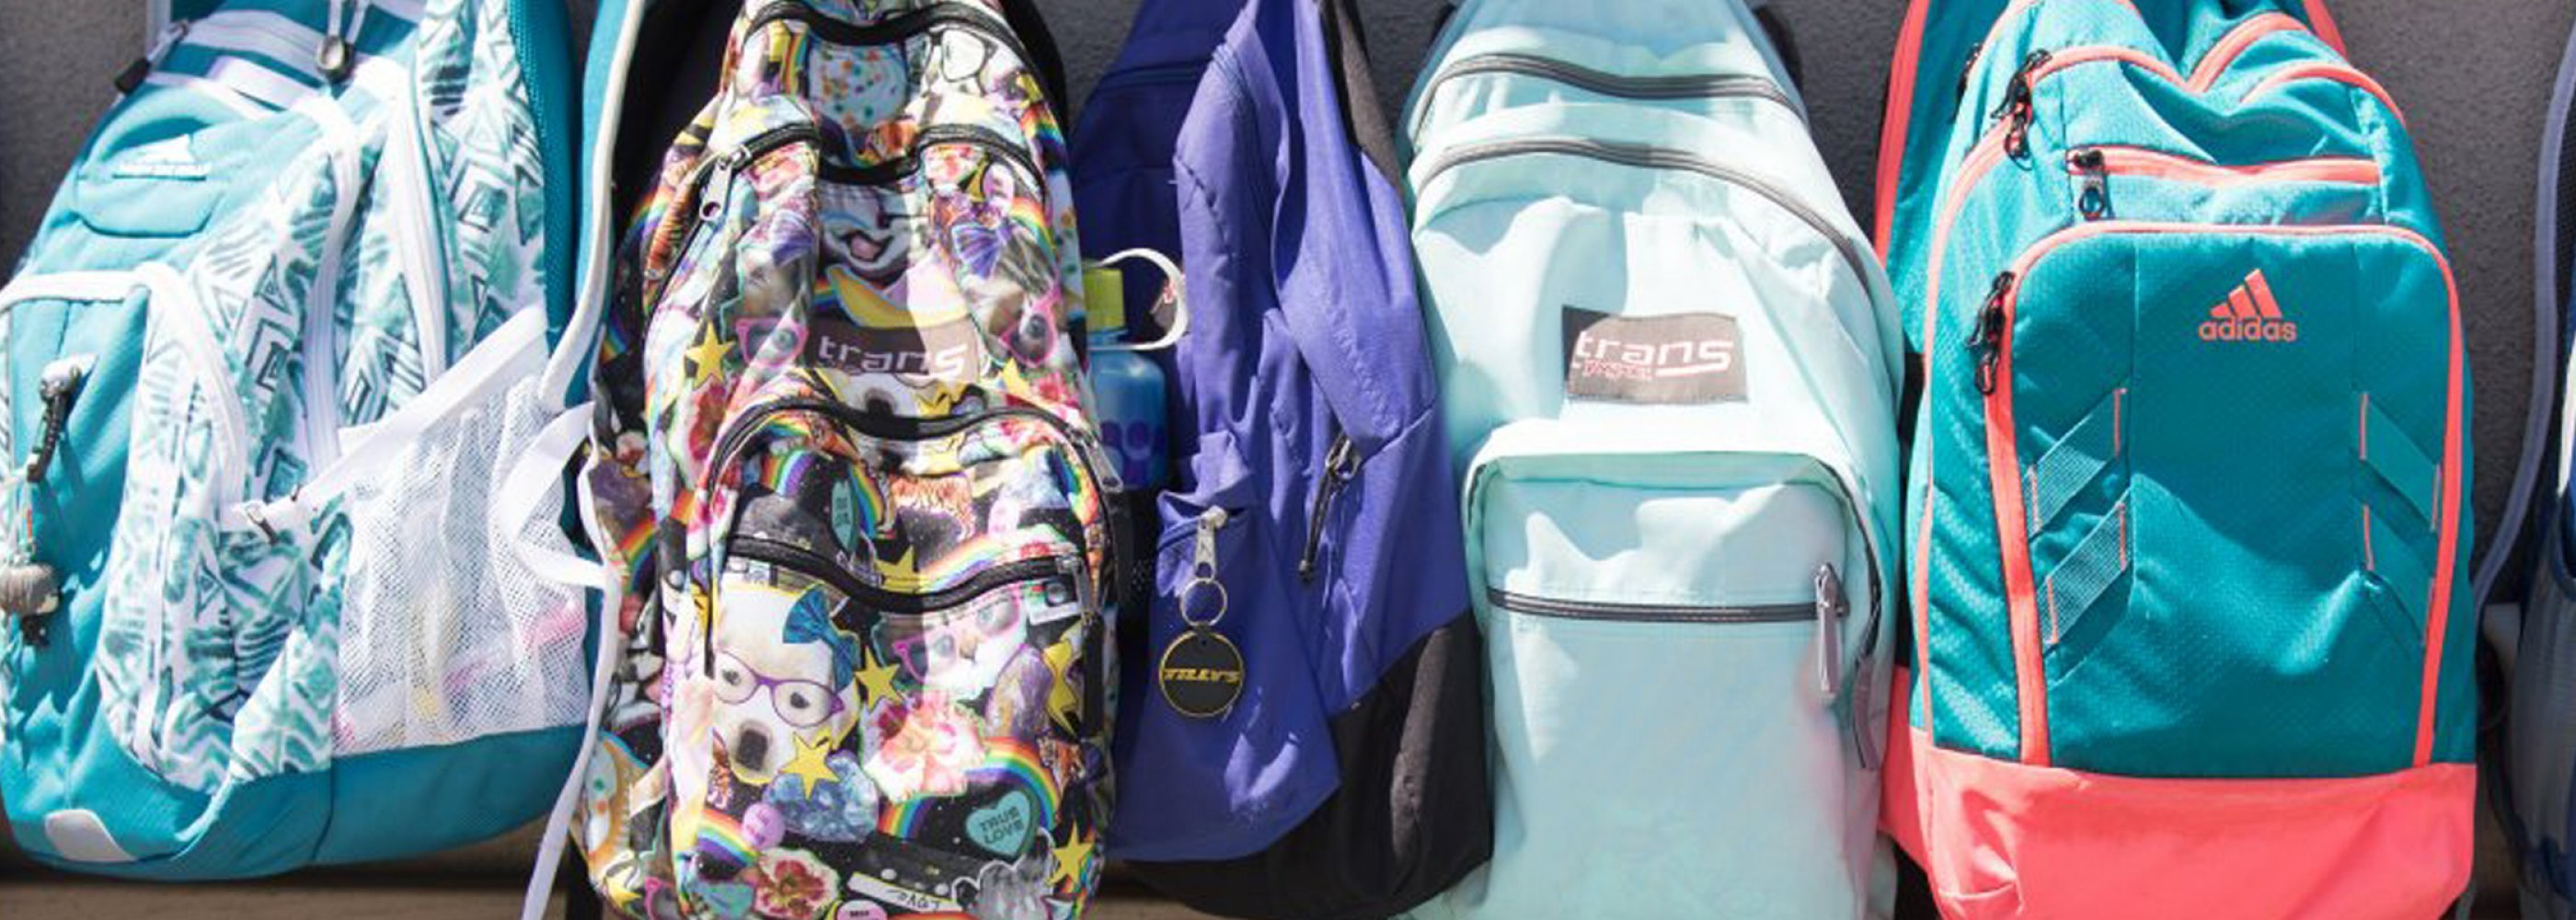 lined up backpacks